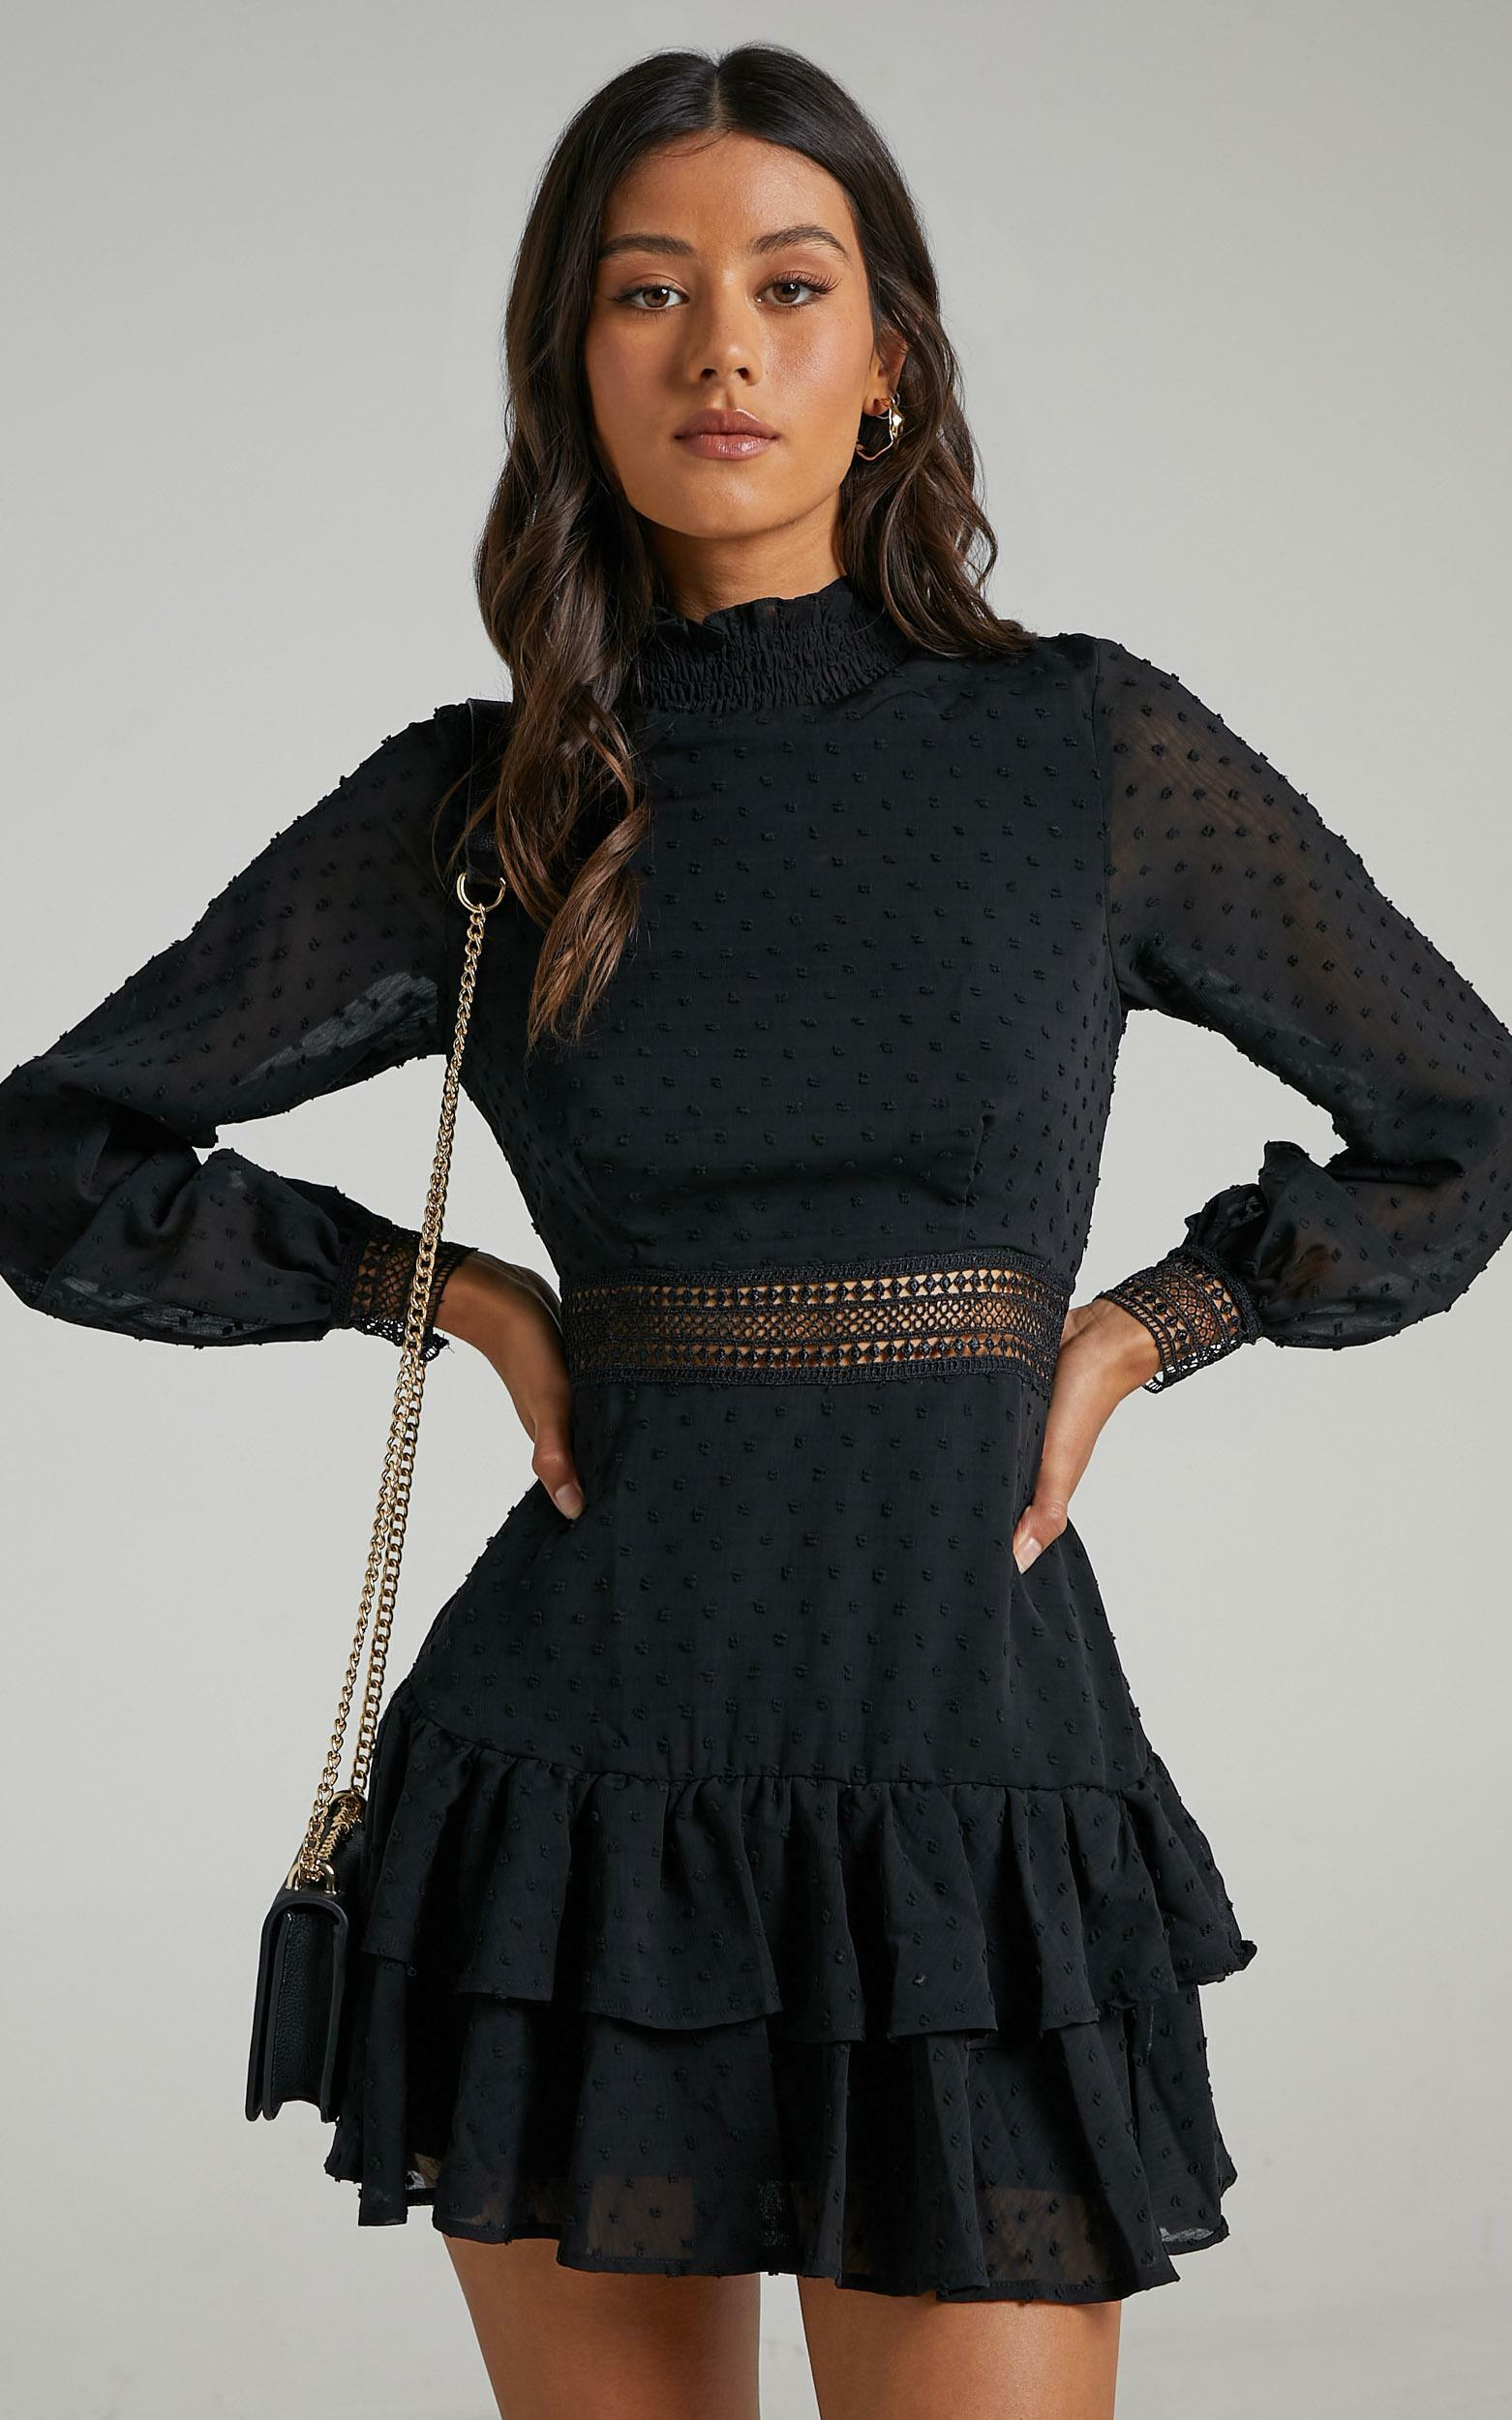 Are You Gonna Kiss Me Long Sleeve Mini Dress in Black - 20, BLK1, hi-res image number null